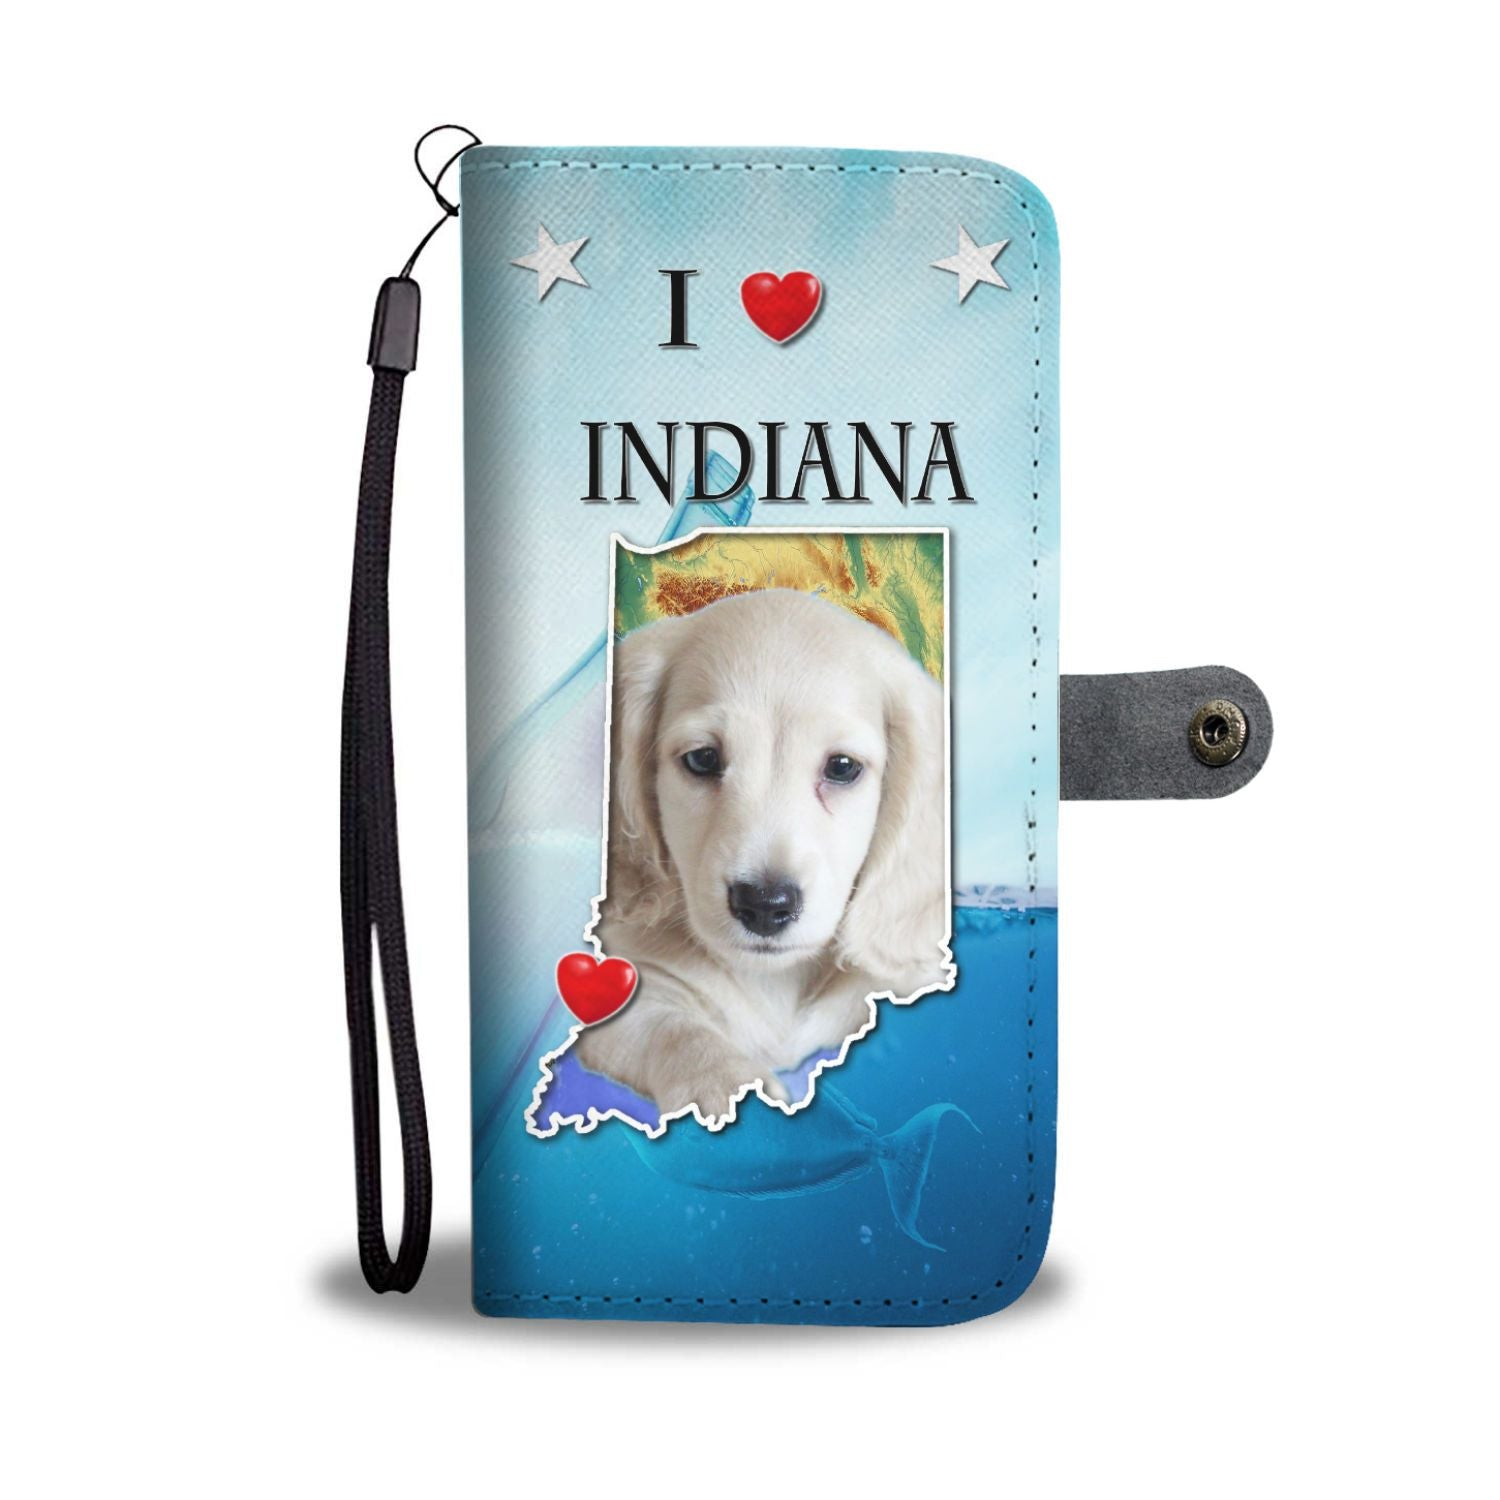 Cute Dachsund Dog Print Wallet Case-Free Shipping-IN State - The Horse Barn